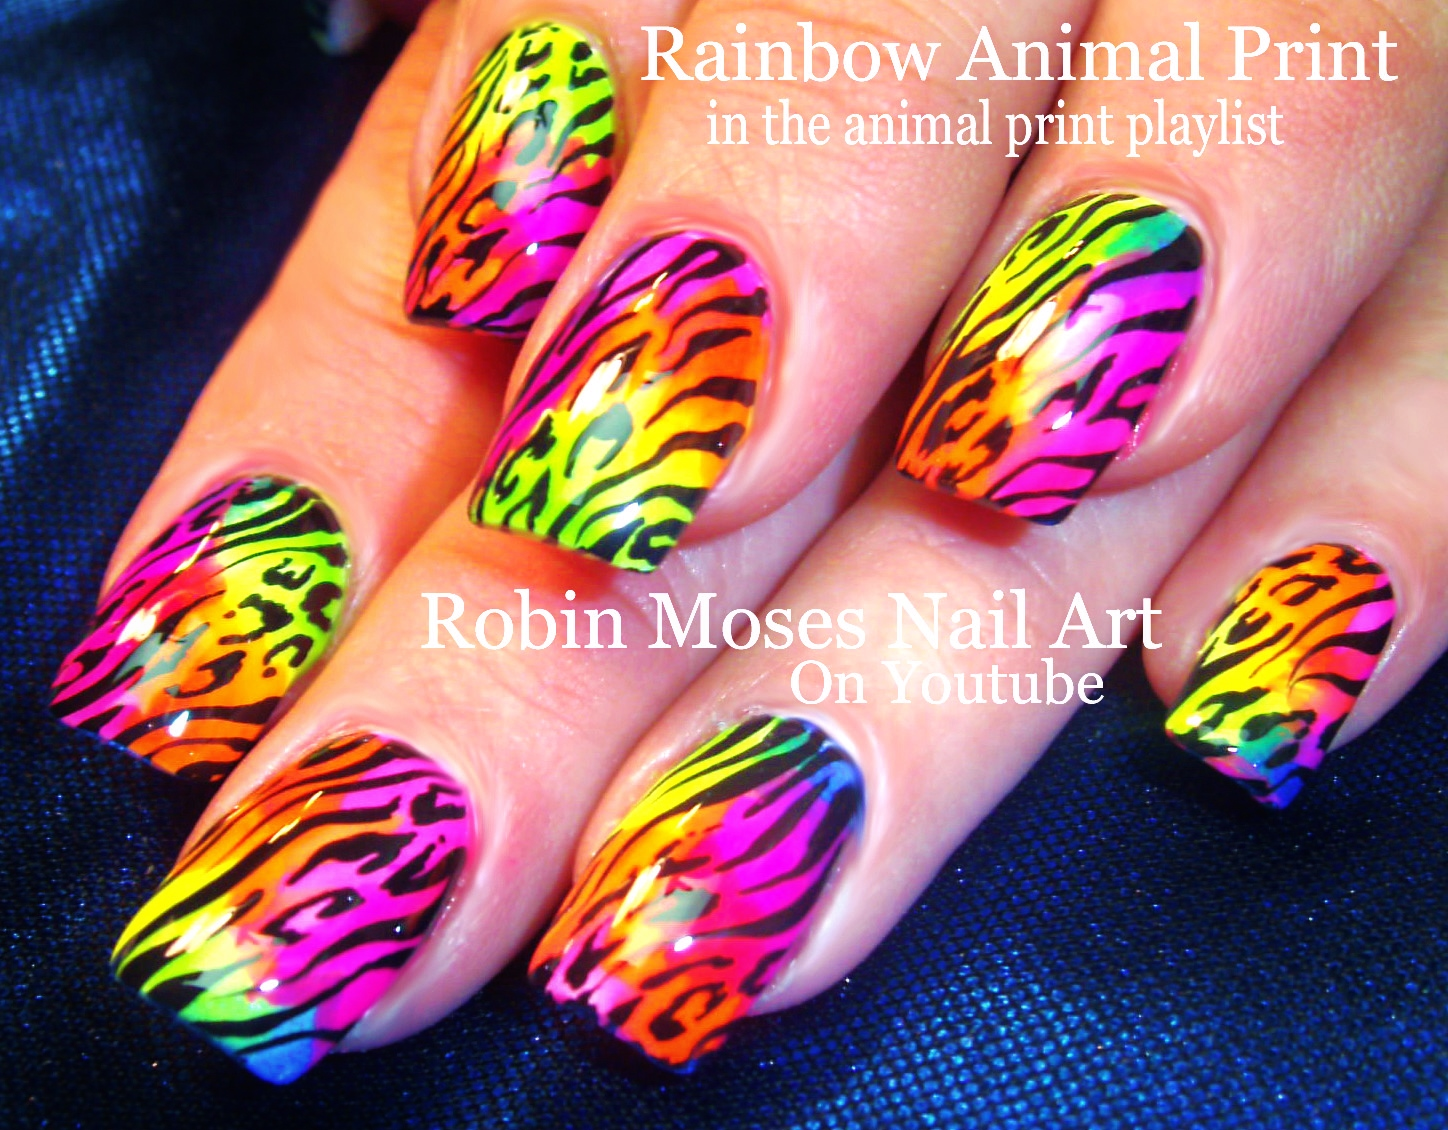 Hot Rainbow Animal Print Design to bring out your nail art Wild side!  Rawrrr! :D Tutorial inside! - Nail Art By Robin Moses: Hot Rainbow Animal Print Design To Bring